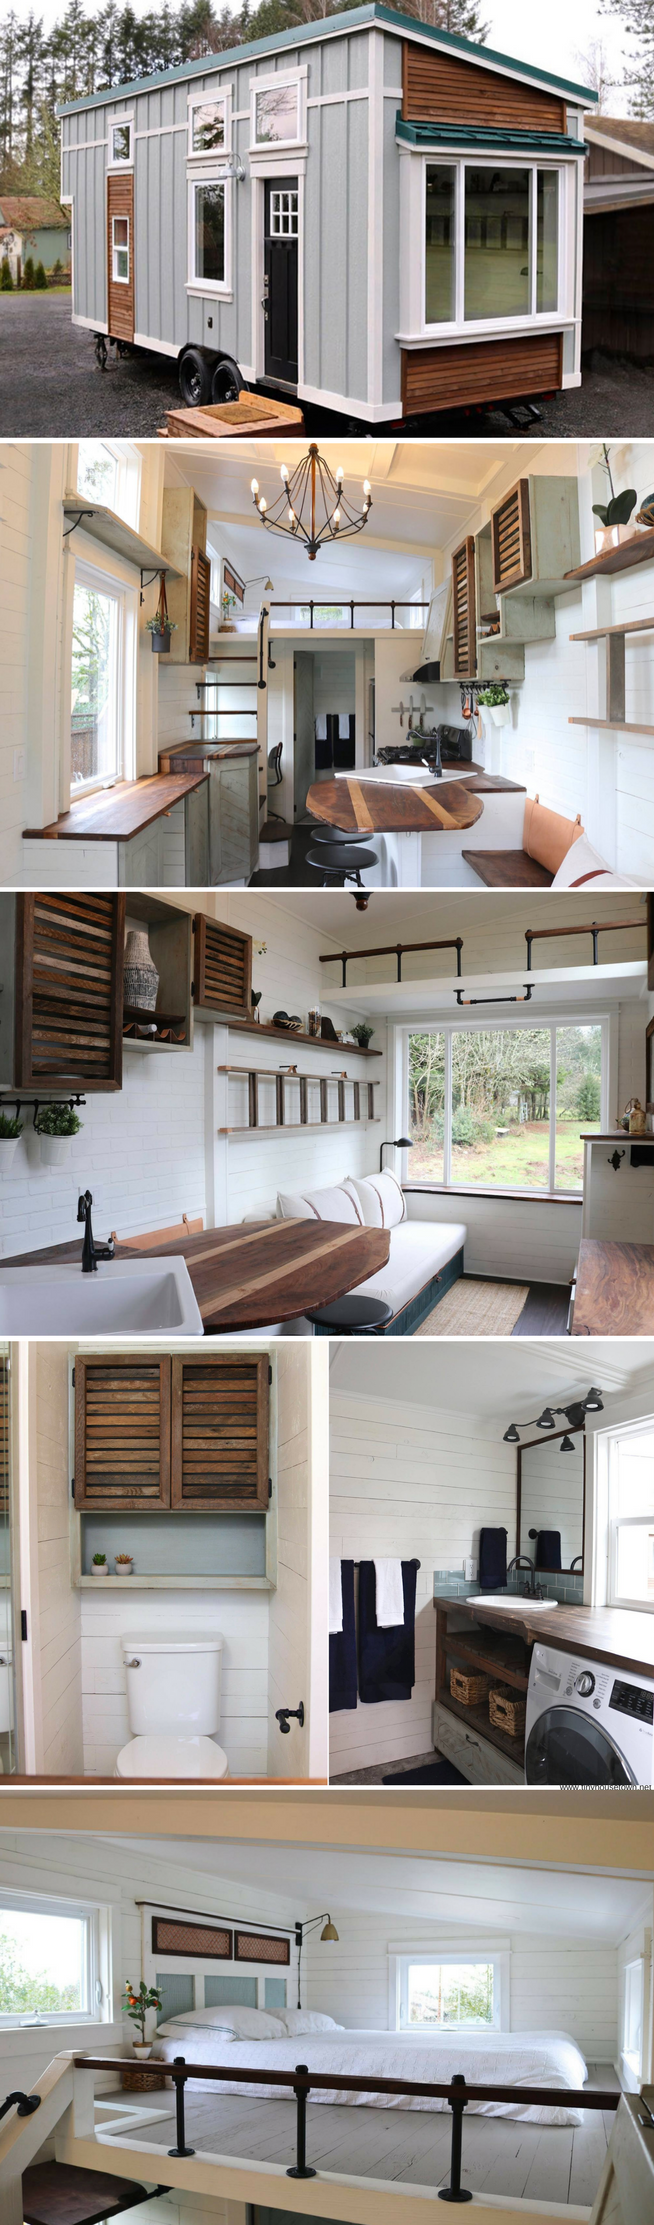 Tiny Home Designs: Tiny Getaway By Handcrafted Movement